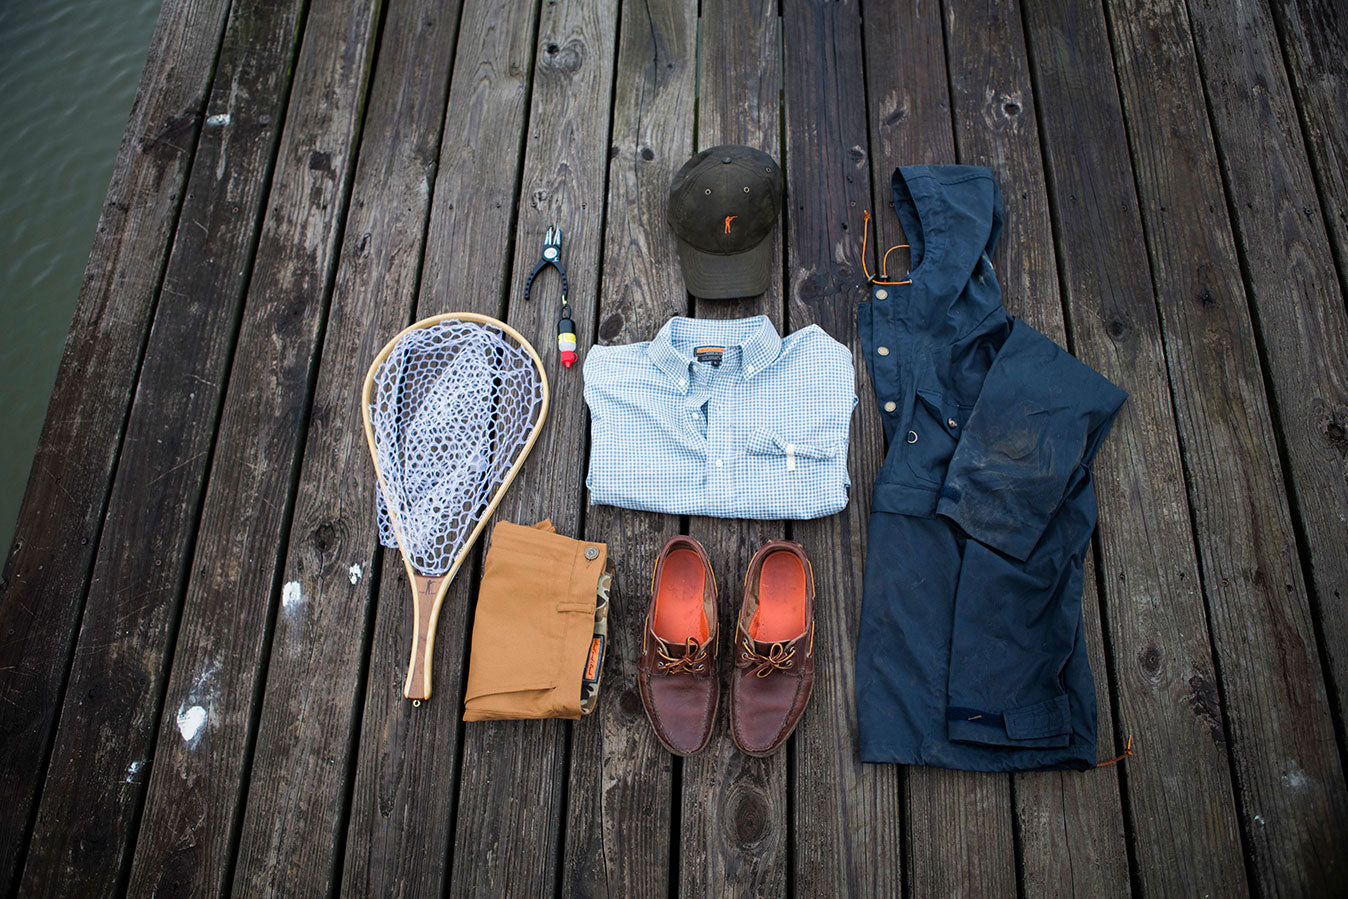 Premium Waxed Cotton Hat | The Anglers Shirt, Wahconah | The Anorak, Steel Blue | The Traveler Boat Shoe, Carolina Brown | The 6 Point Duck Cotton Short, Caramel